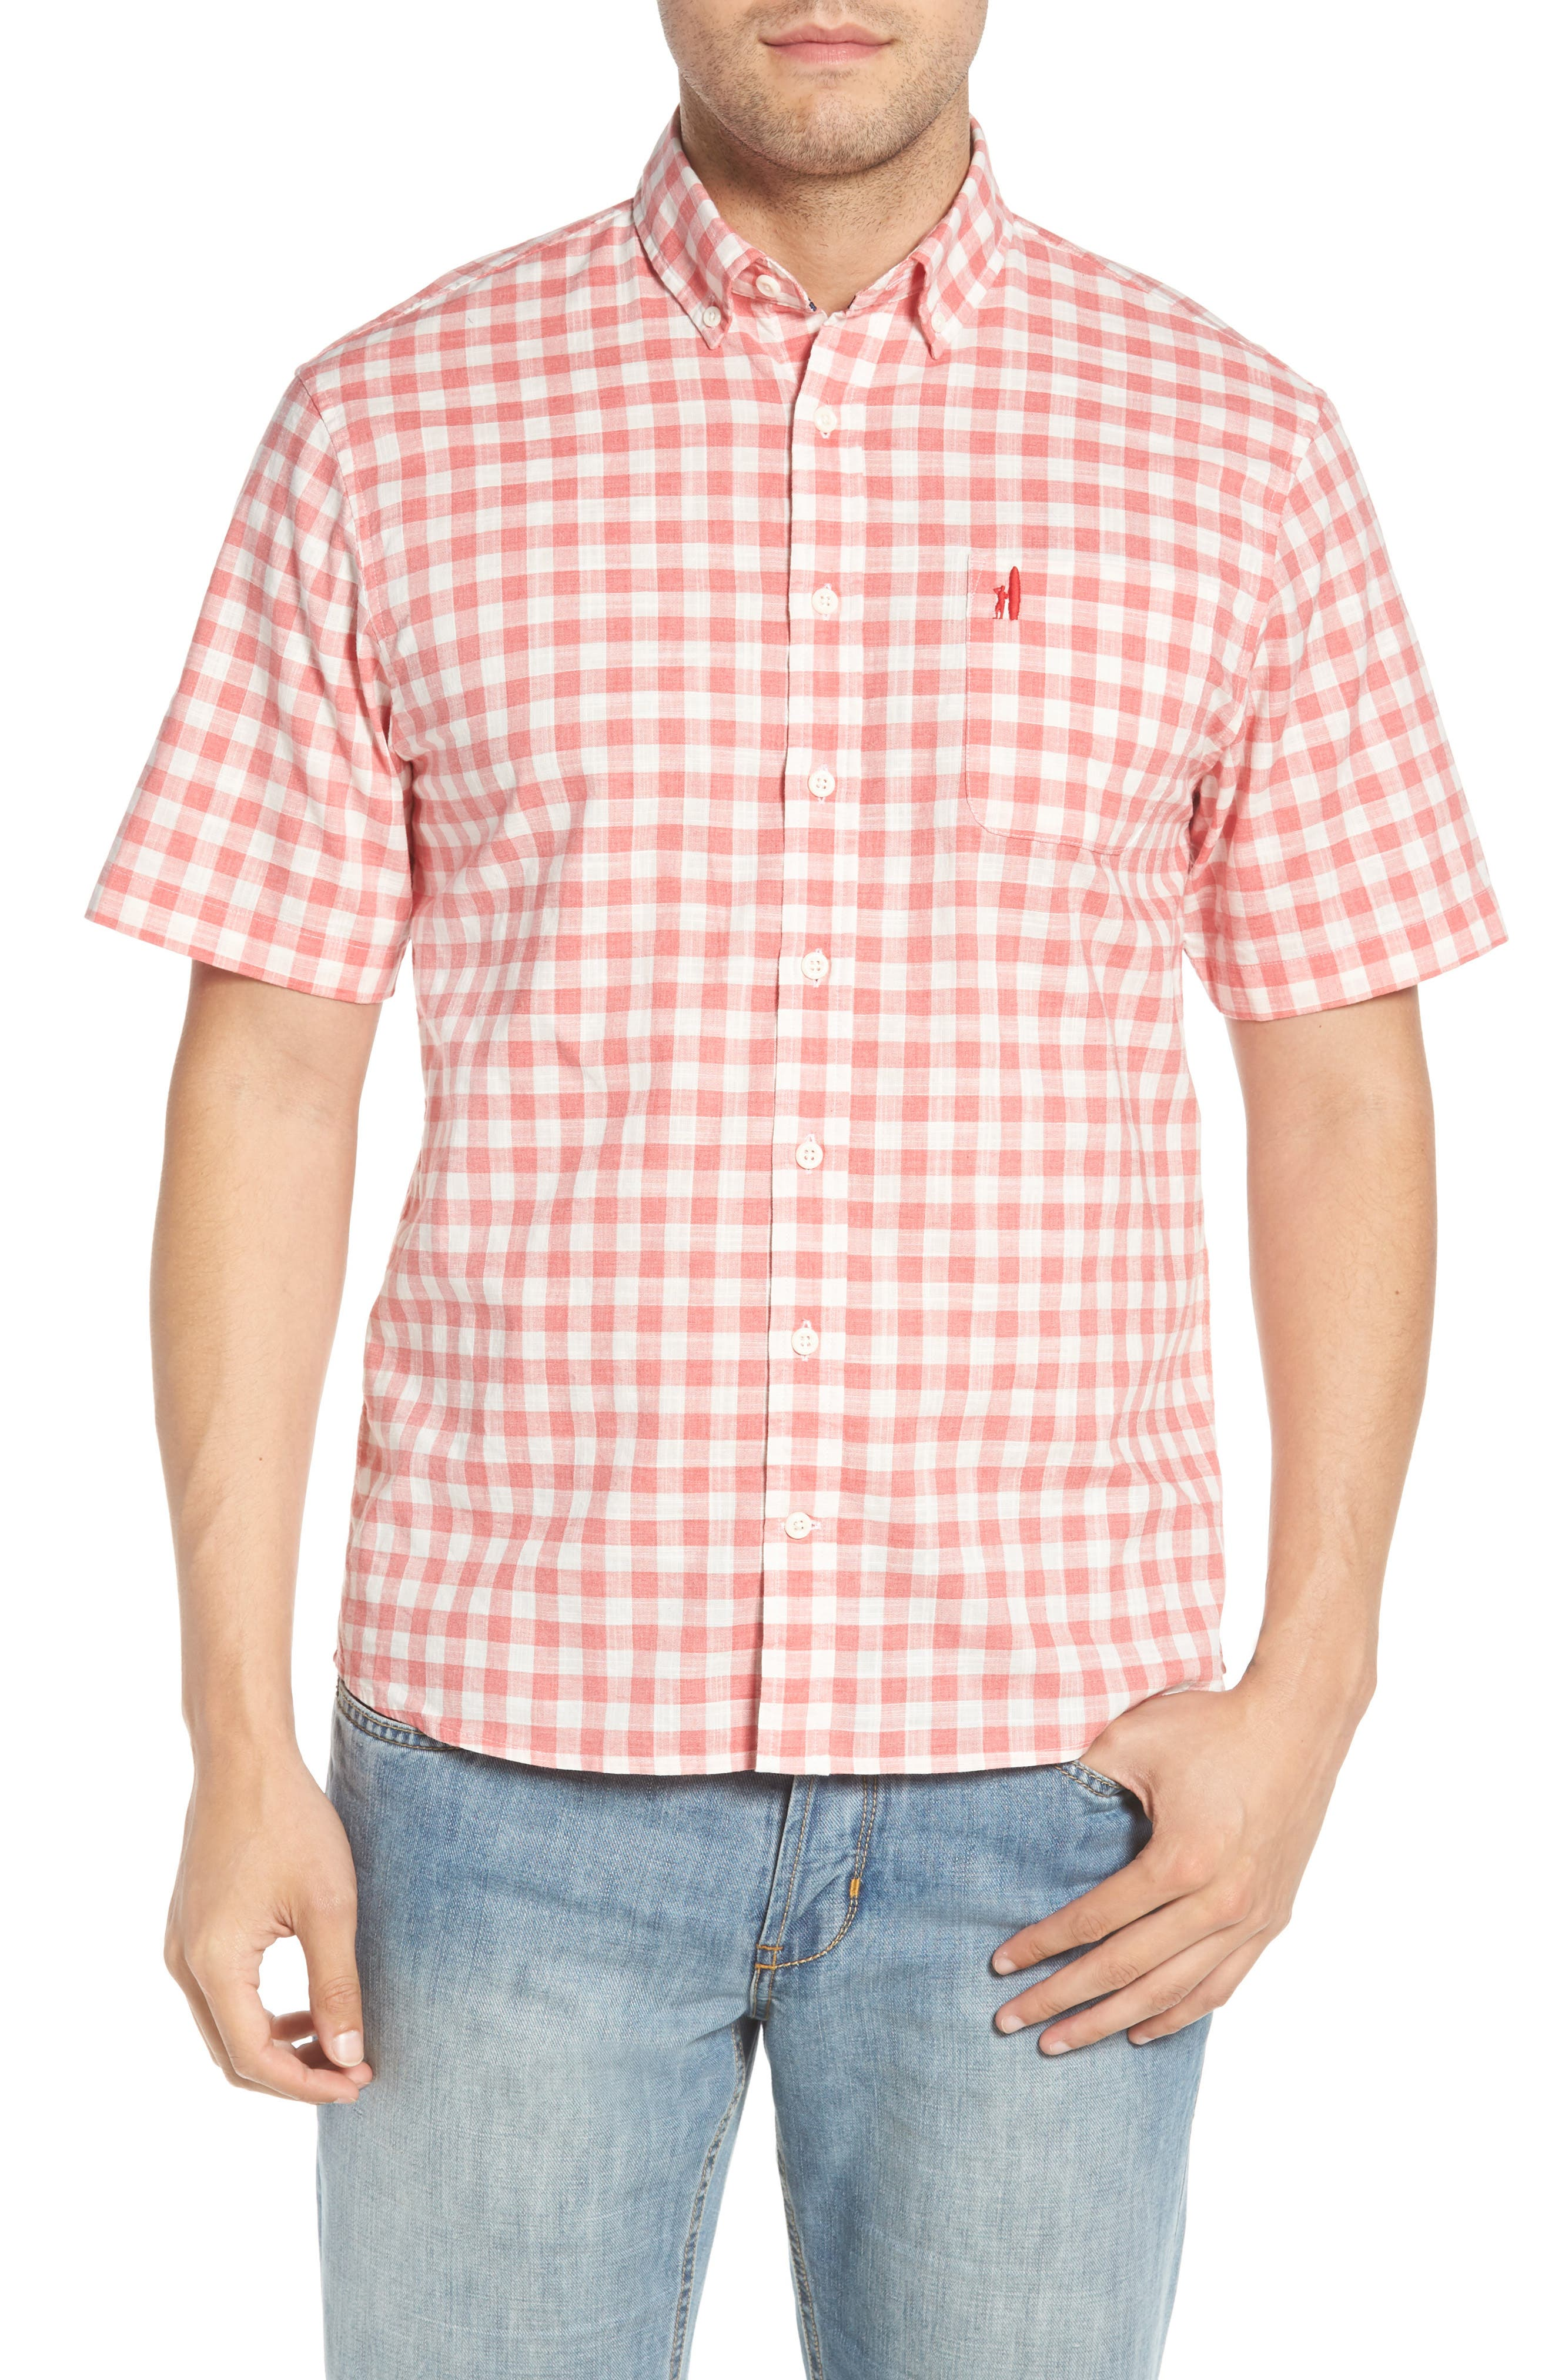 Watts Regular Fit Sport Shirt,                         Main,                         color, CALYPSO